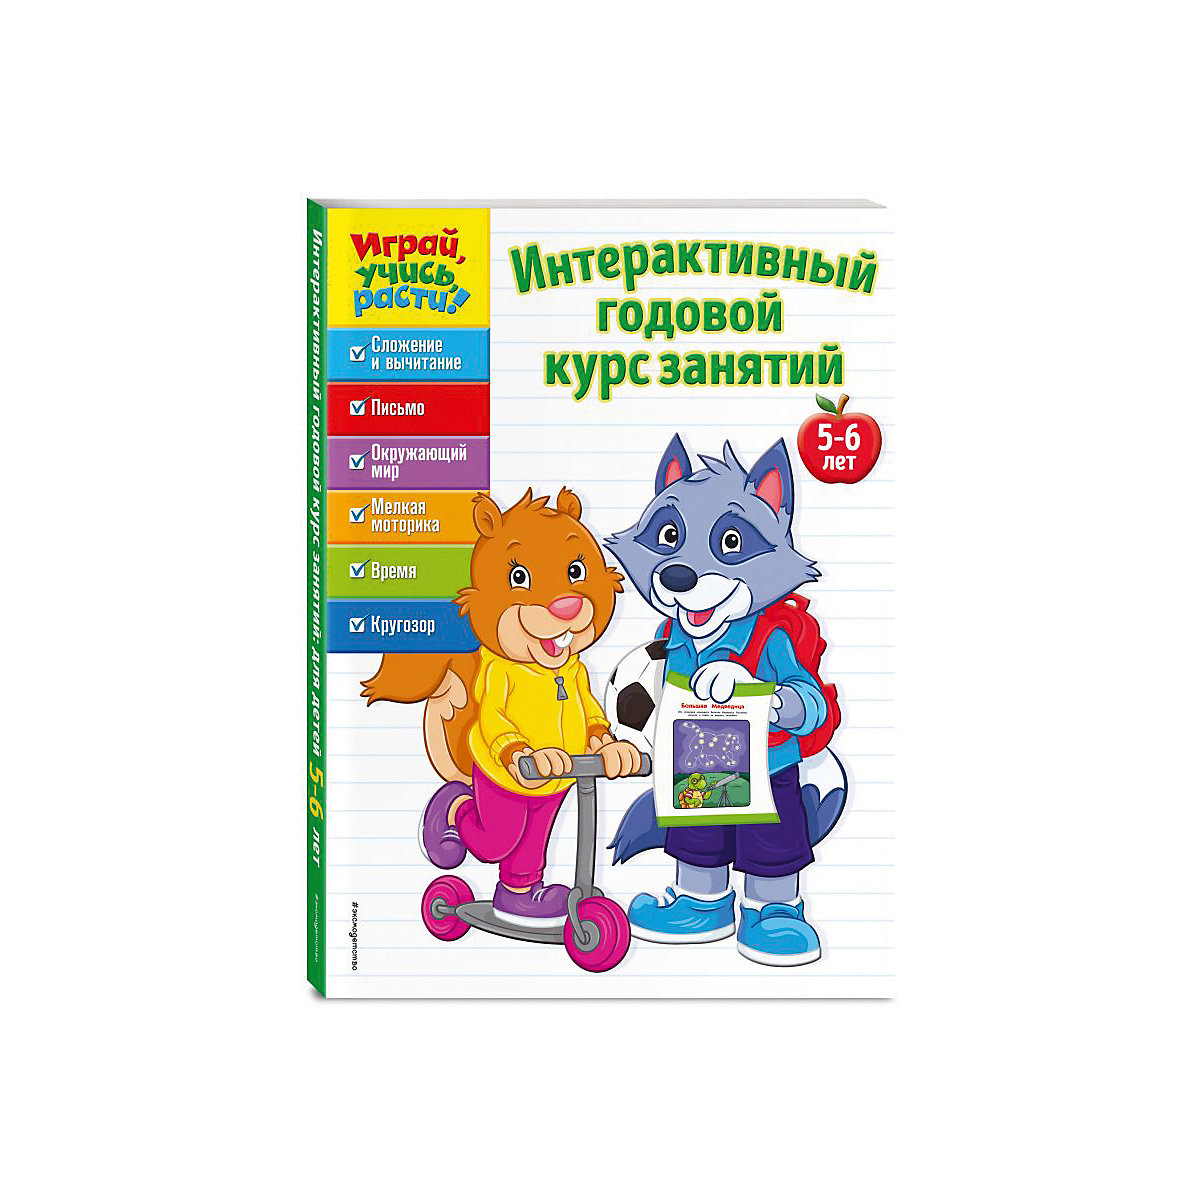 Books EKSMO 8676231 Children Education Encyclopedia Alphabet Dictionary Book For Baby MTpromo